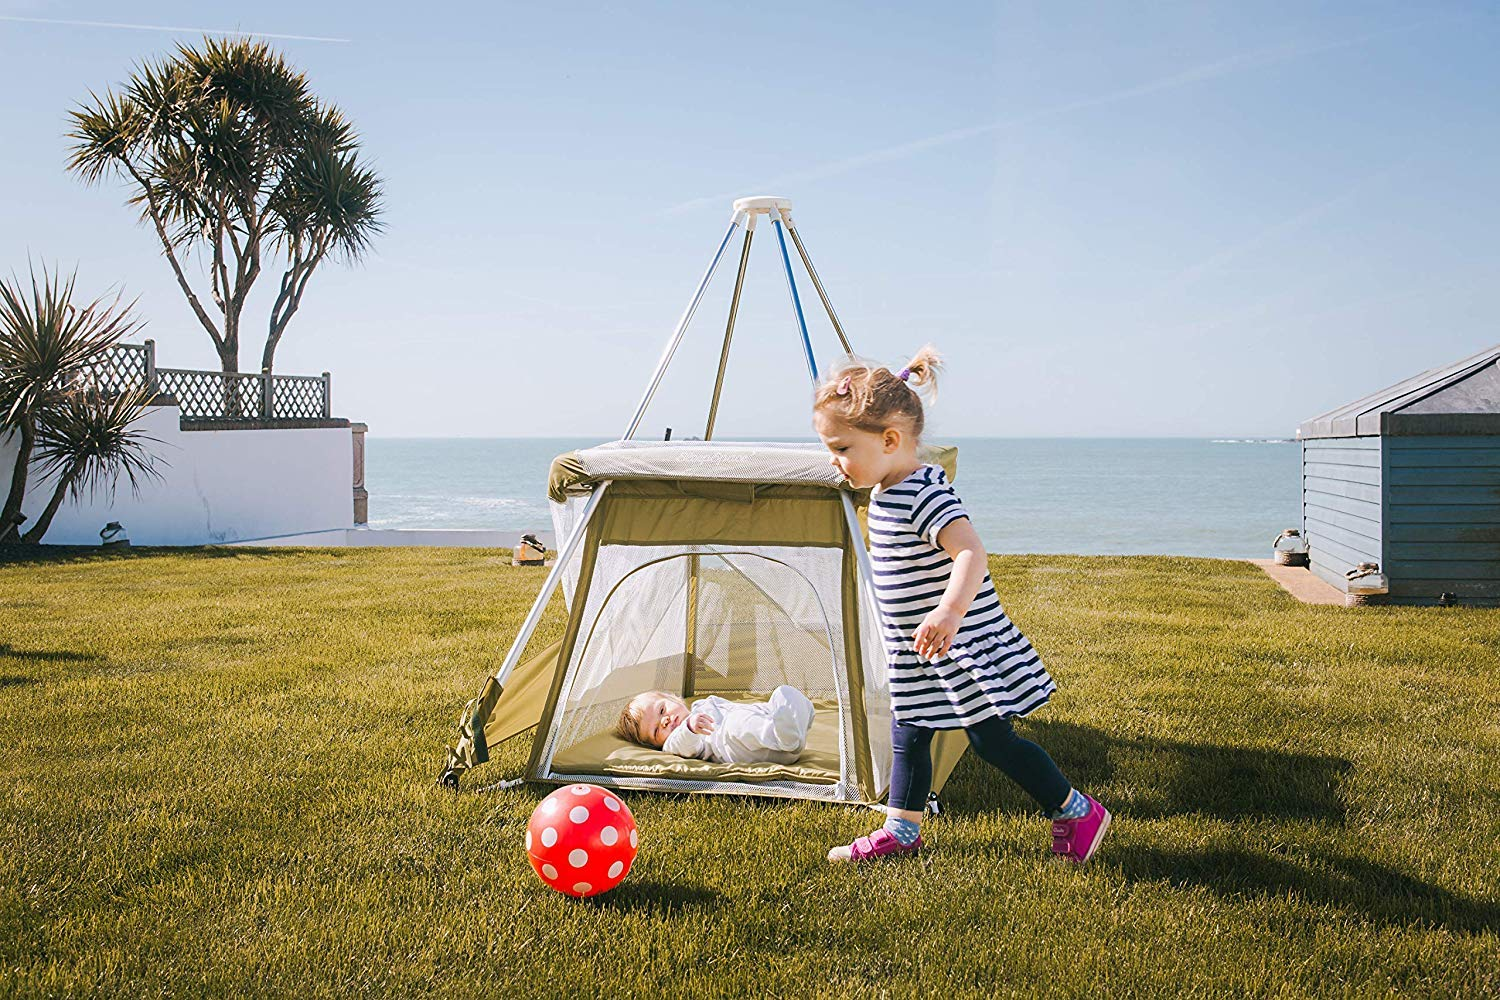 BabyHub Travel Cot with Circus Tepee and Mosquito Net, Green BabyHub A travel cot, mosquito proof space and reuse as a play tepee Lightweight and easy to put up and fold in seconds Includes extra padded seam-free mat for comfort 5